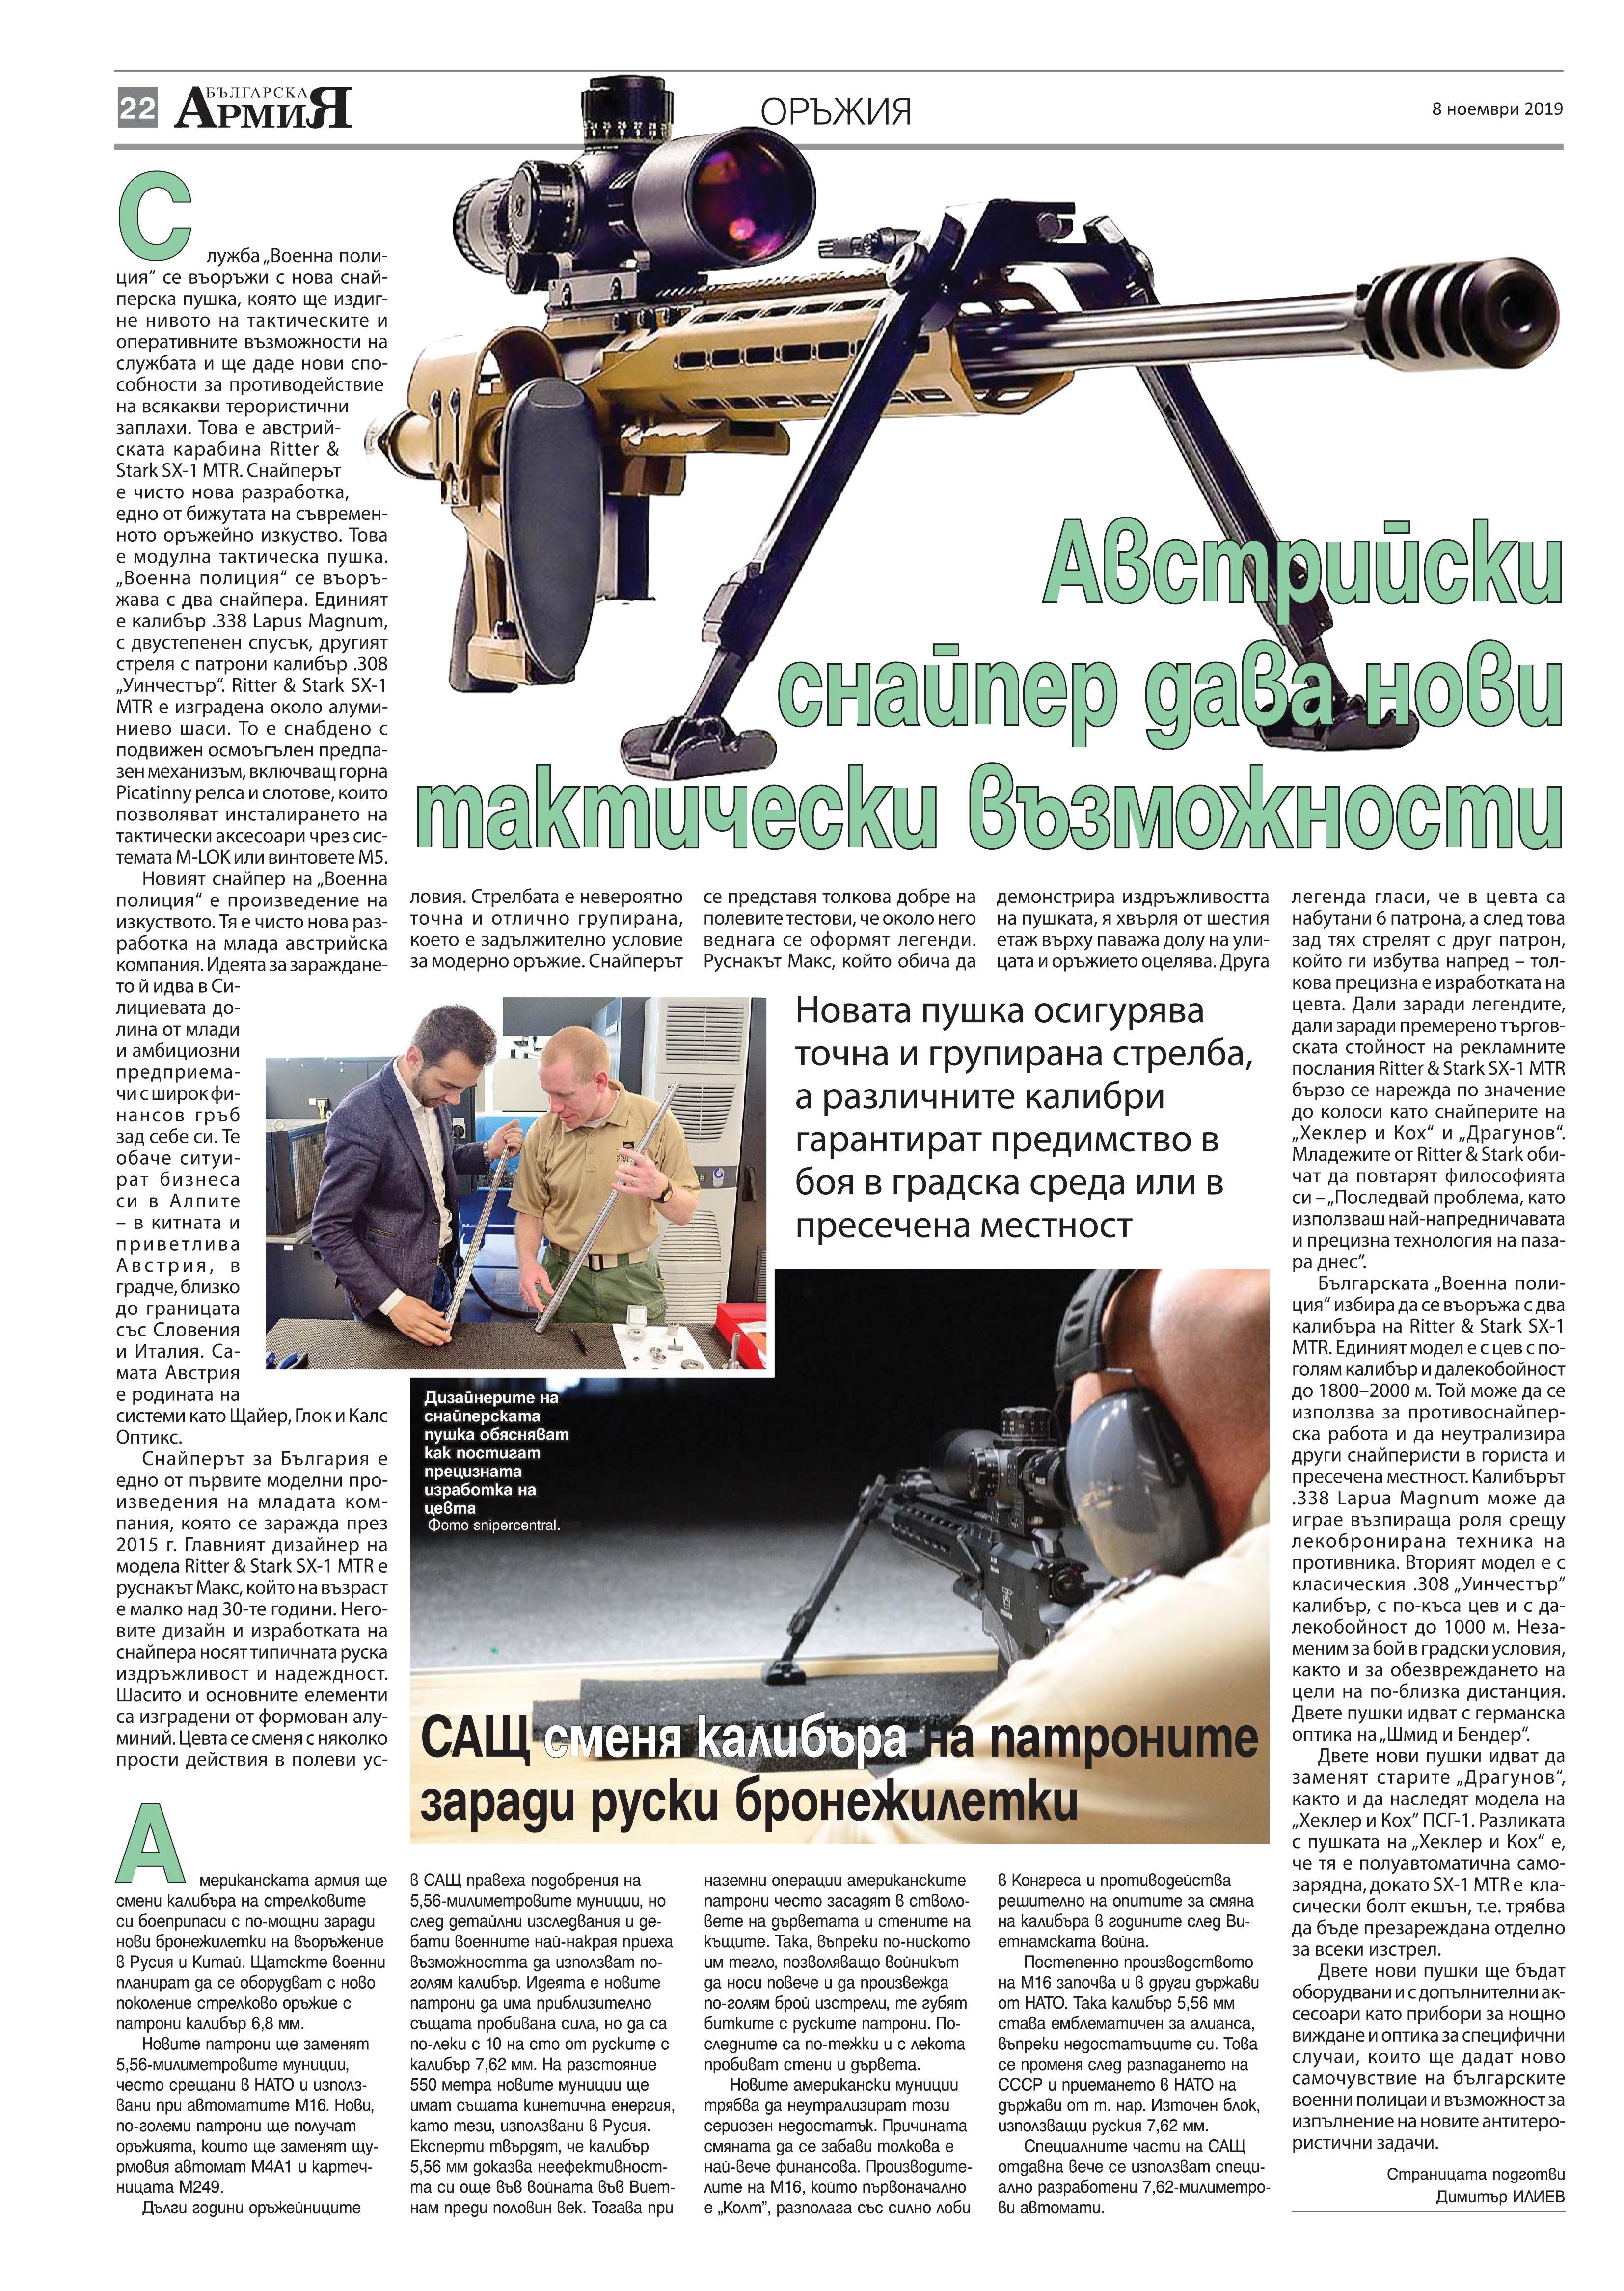 https://www.armymedia.bg/wp-content/uploads/2015/06/22.page1_-115.jpg